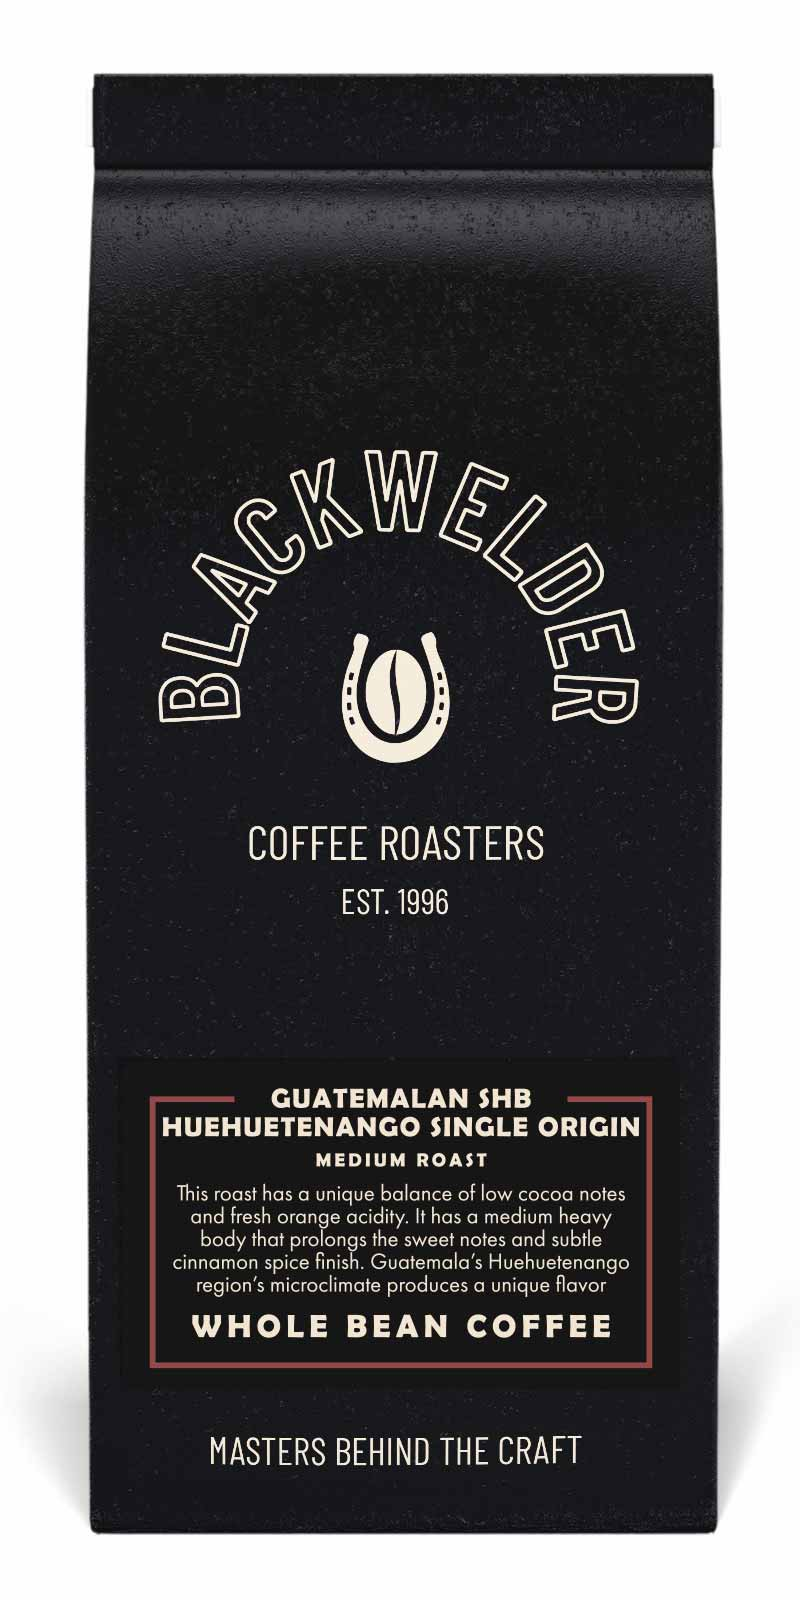 Guatemalan SHB Huehuetanango Single Origin